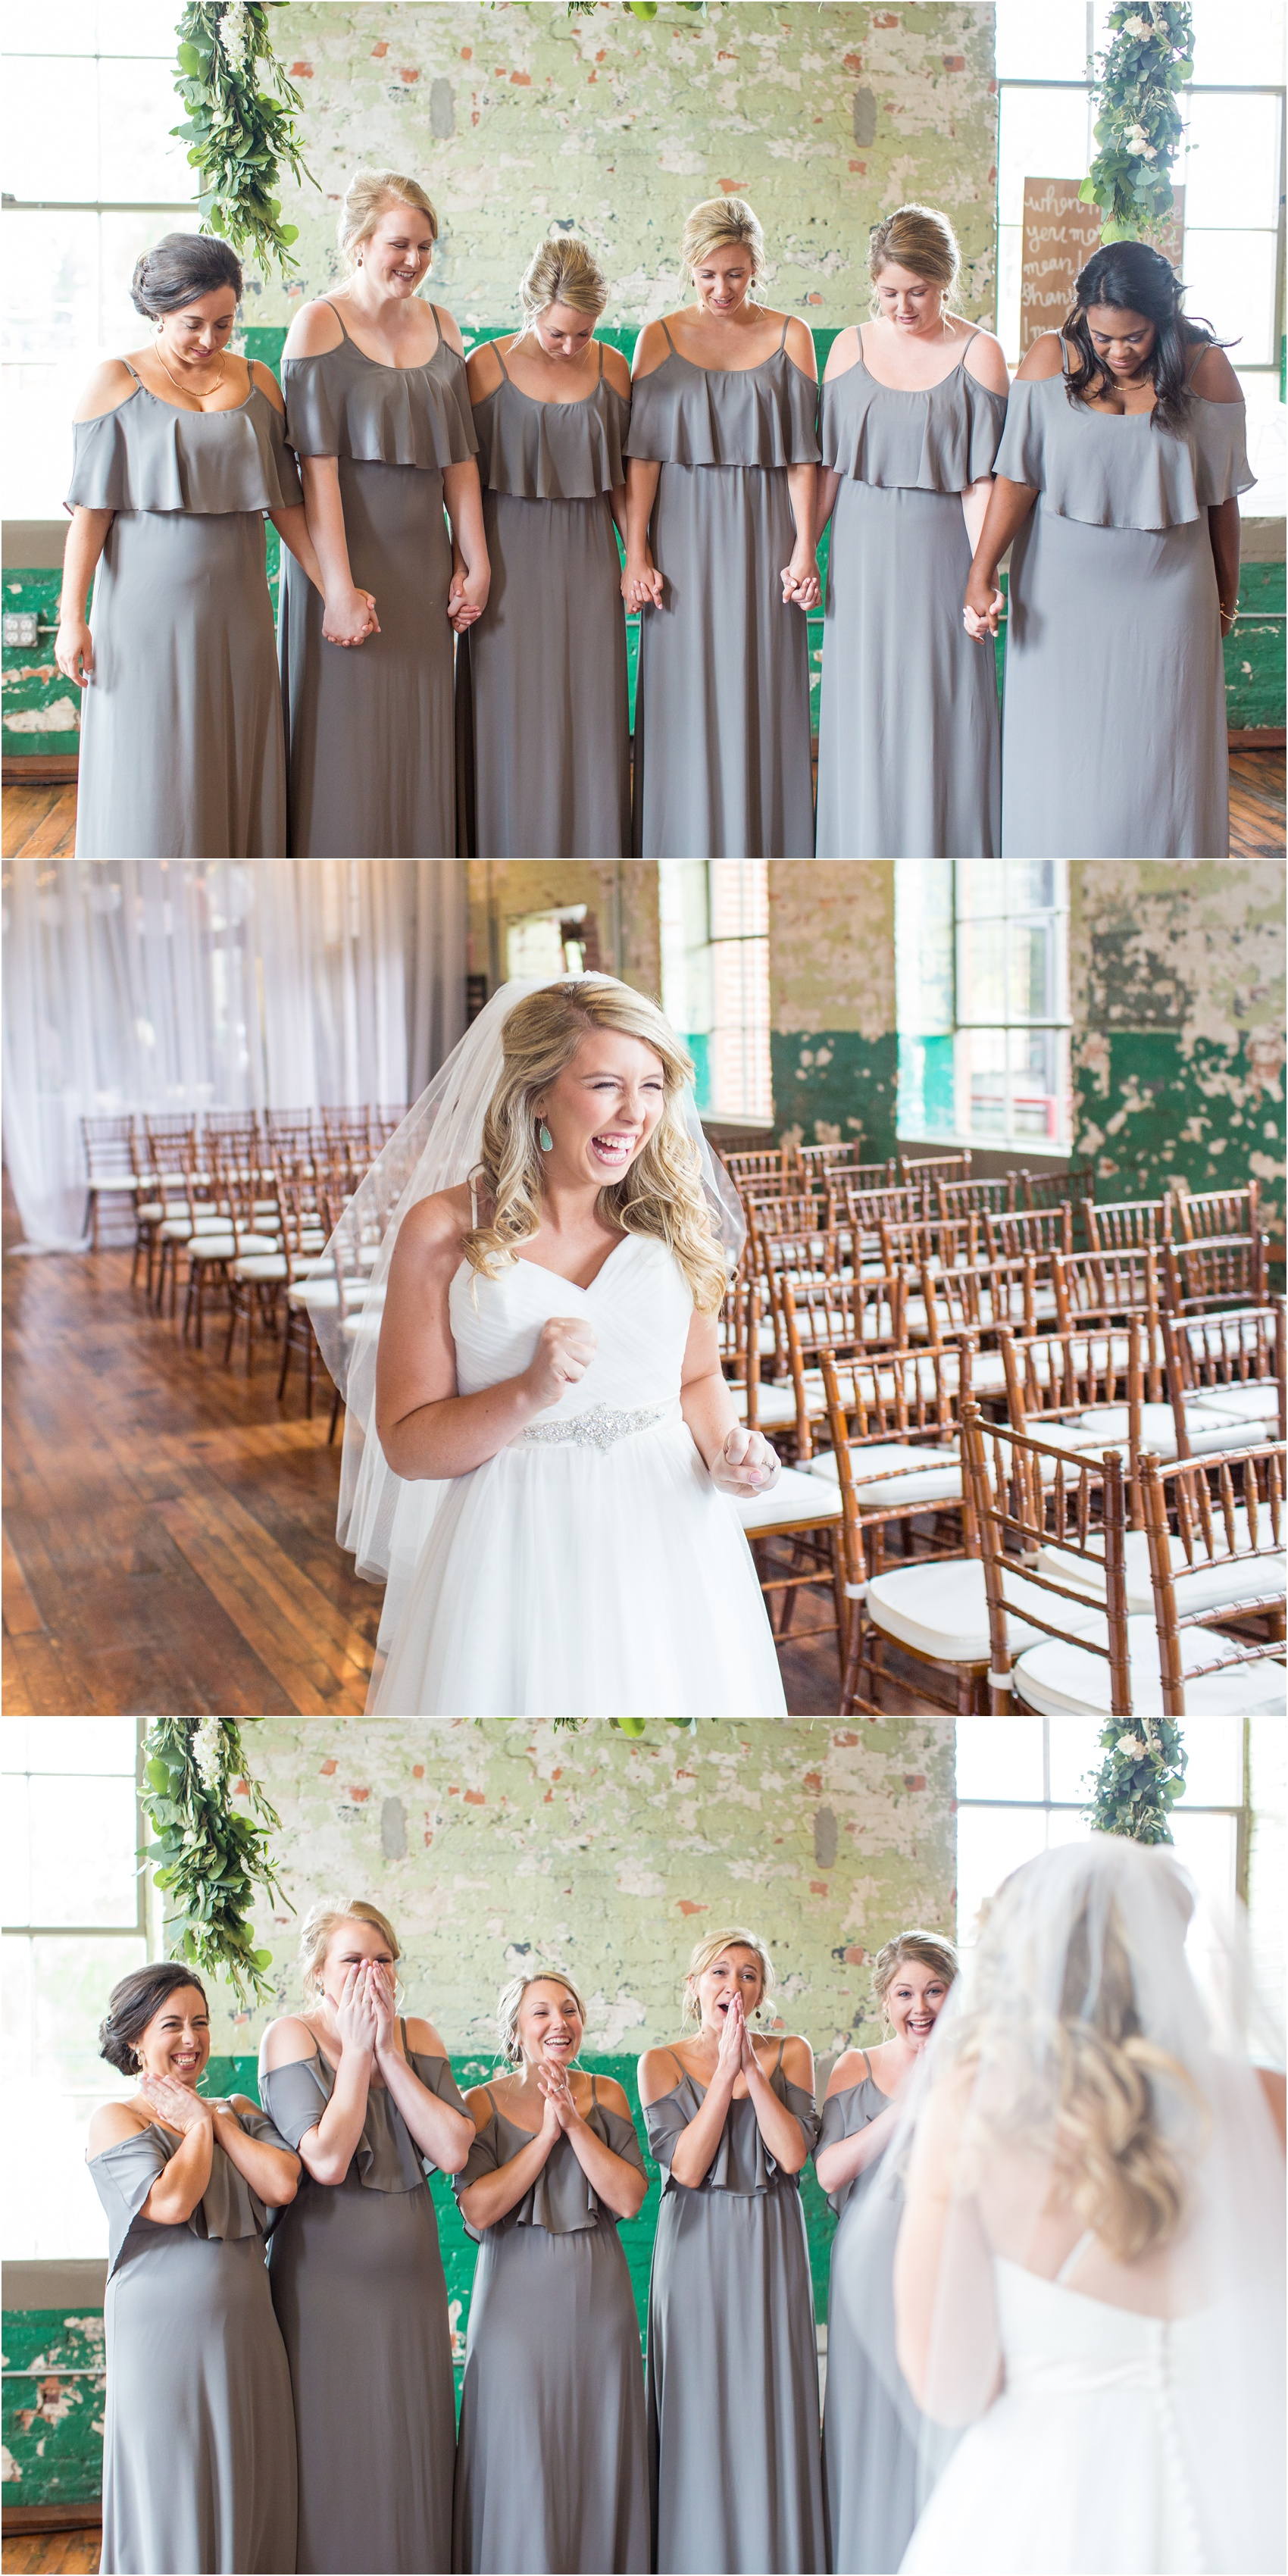 Savannah Eve Photography- Gunter Wedding- Blog-11.jpg